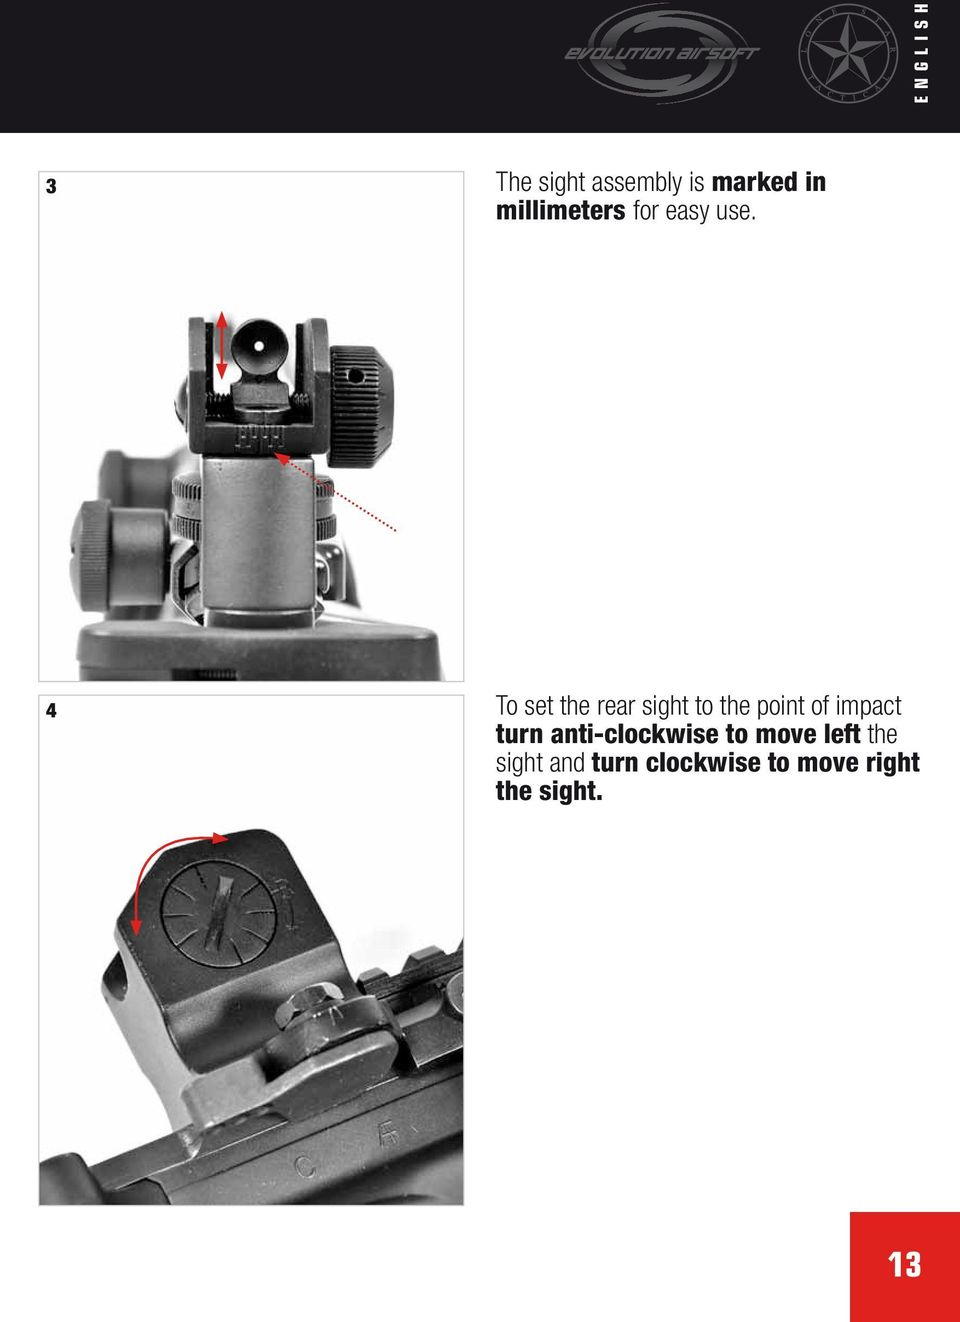 4 To set the rear sight to the point of impact